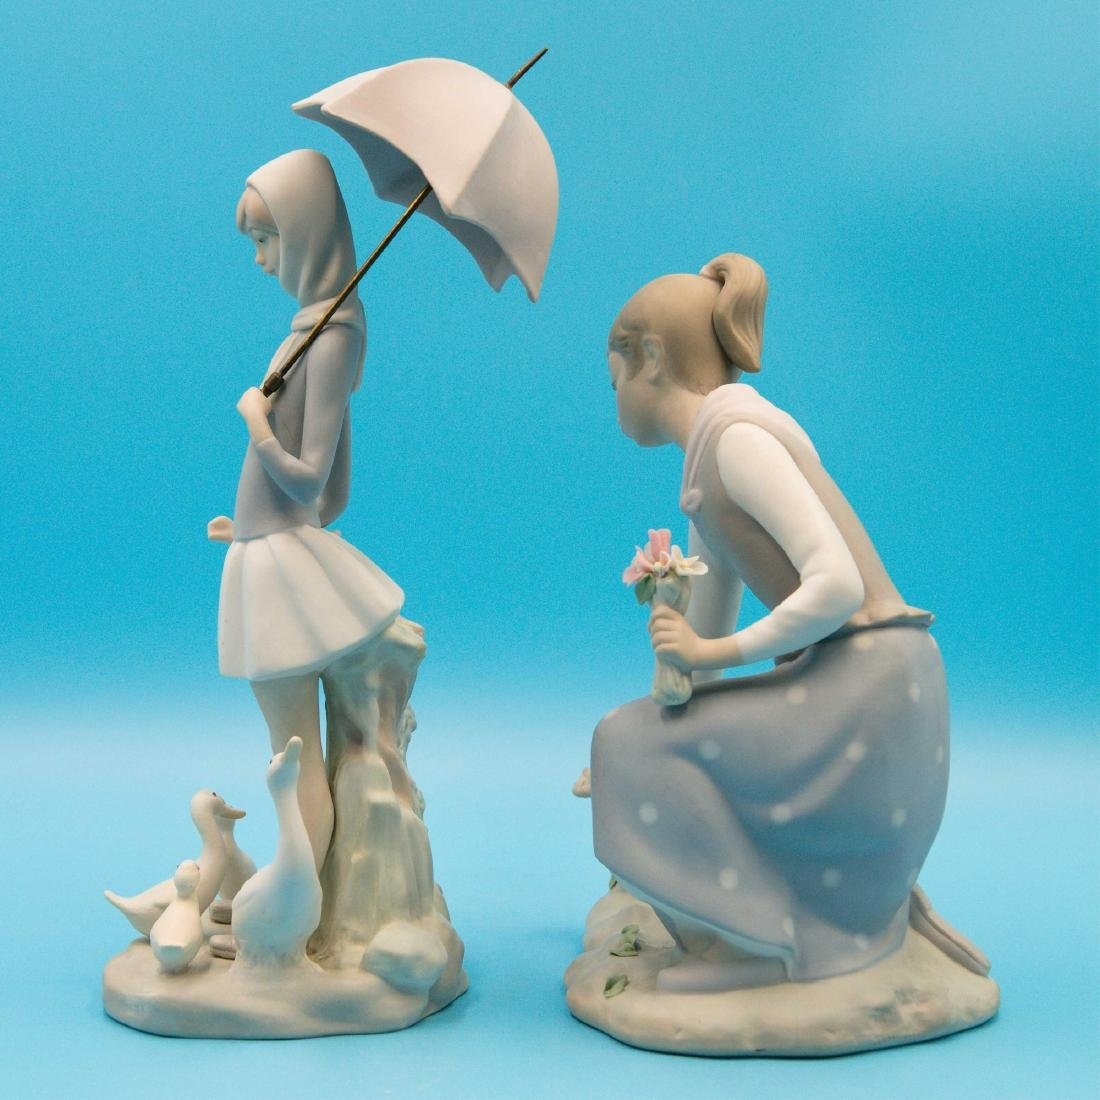 LLADRO GIRL GATHERS FLOWERS AND GIRL WITH UMBRELLA - 2